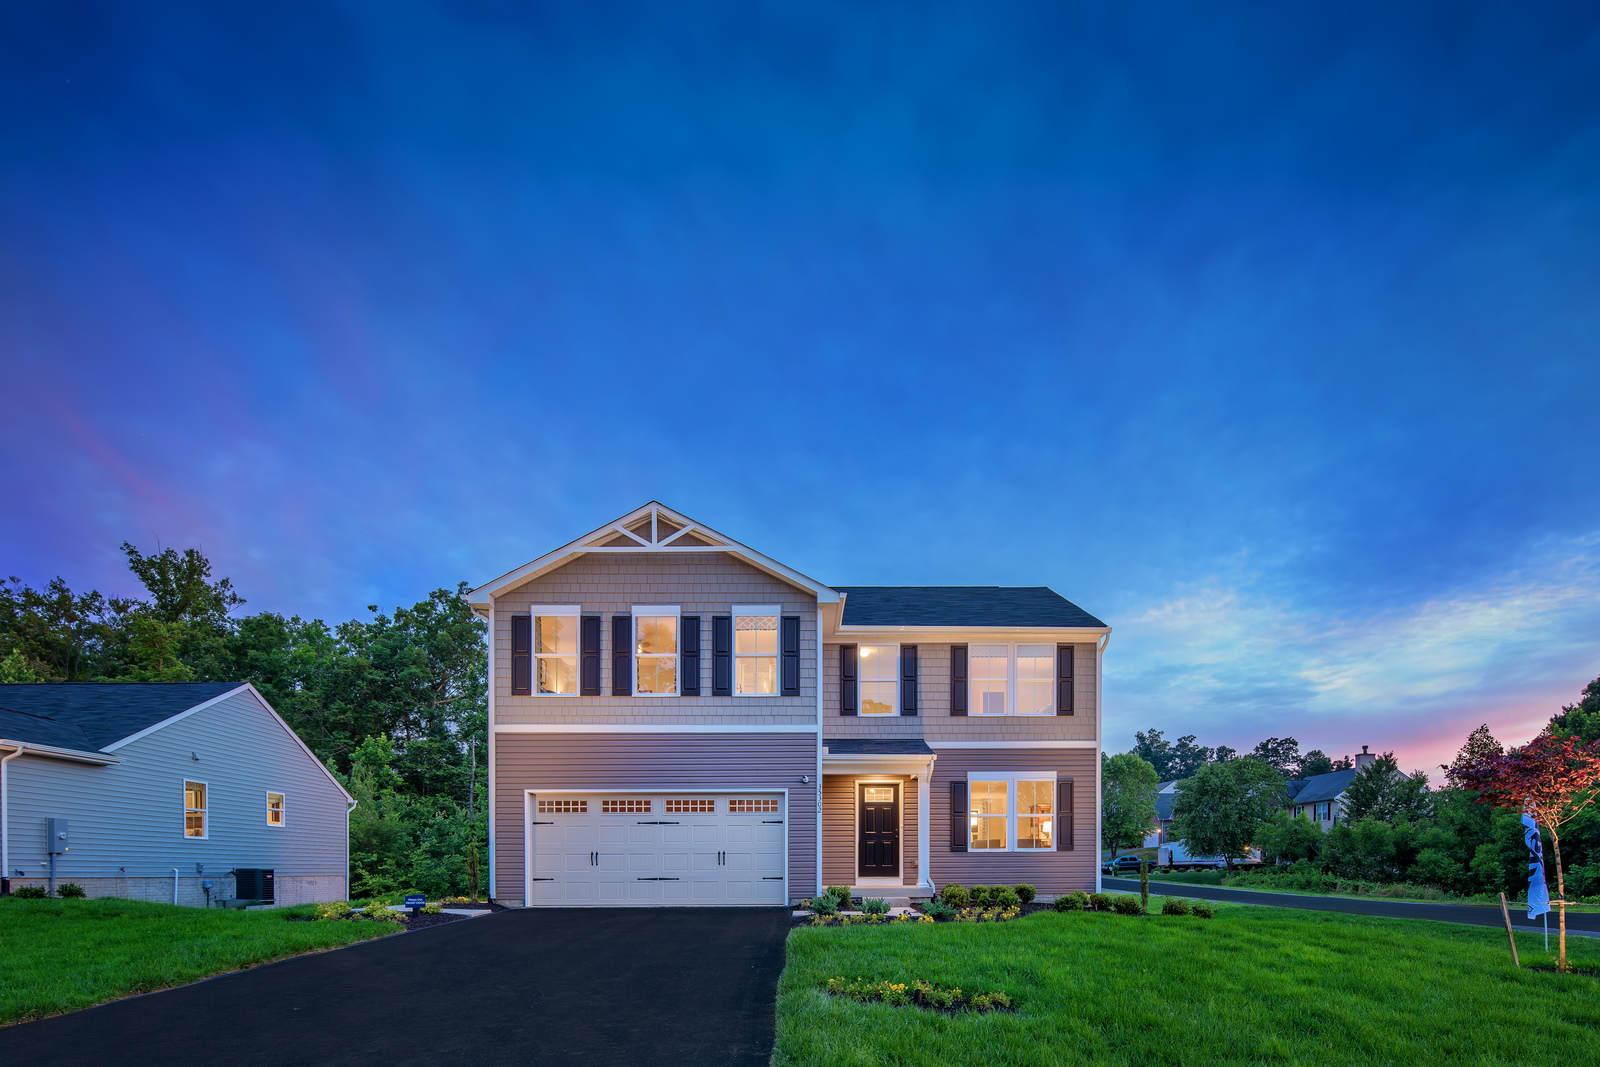 New Homes for sale at Wilderness Shores in Locust Grove ...